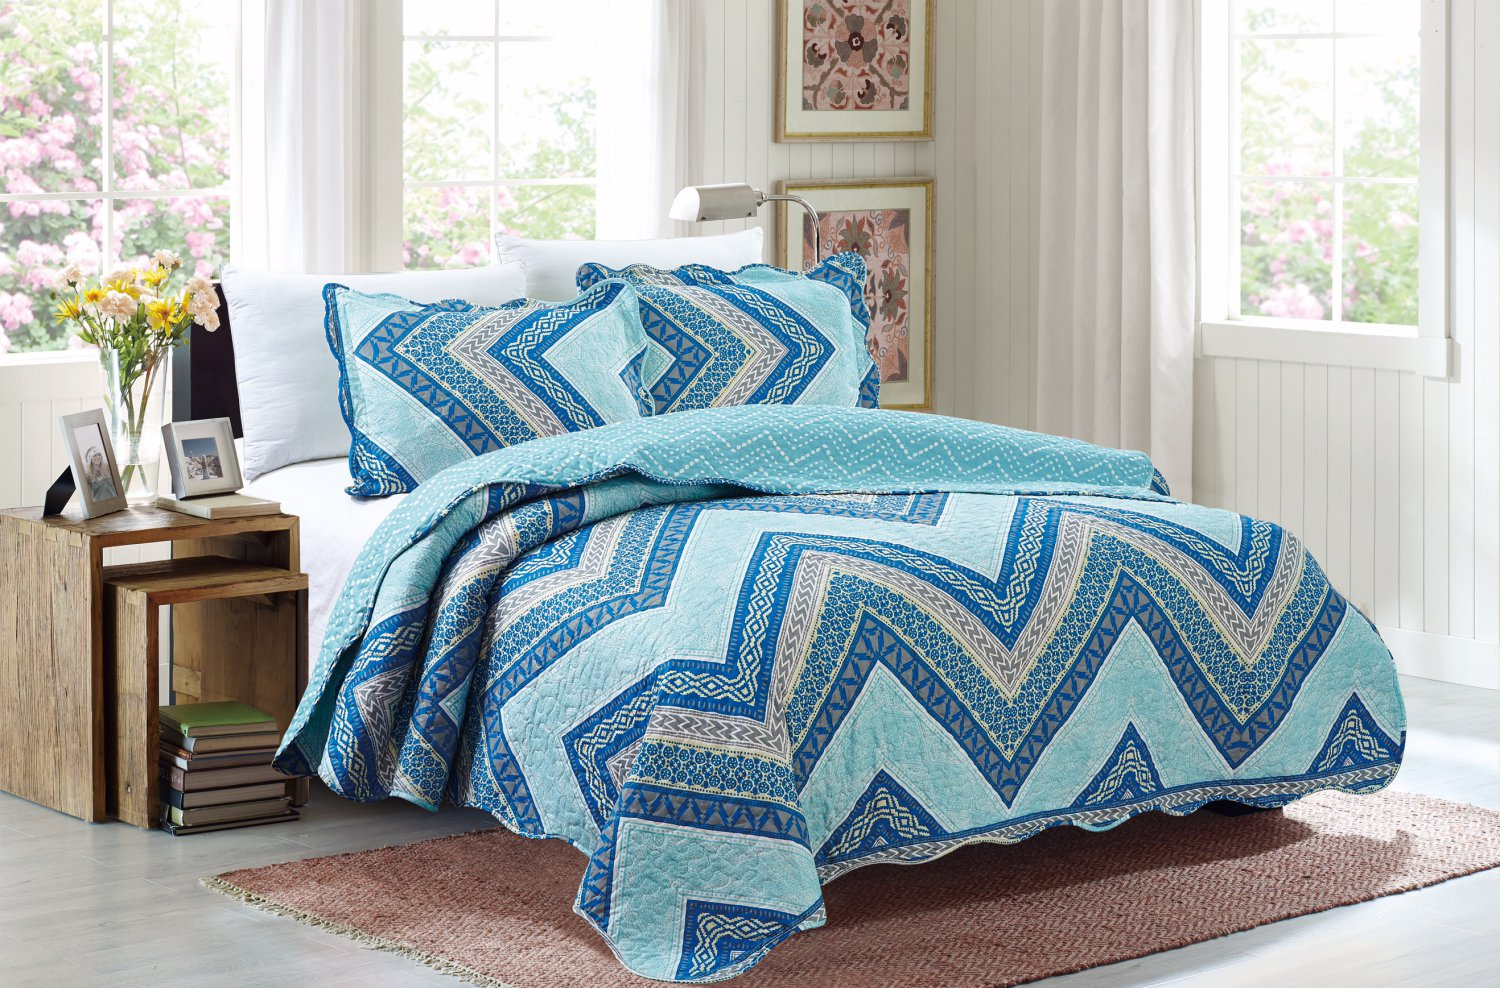 3 Piece Quilt Set Emma-Blue (QueenSize)